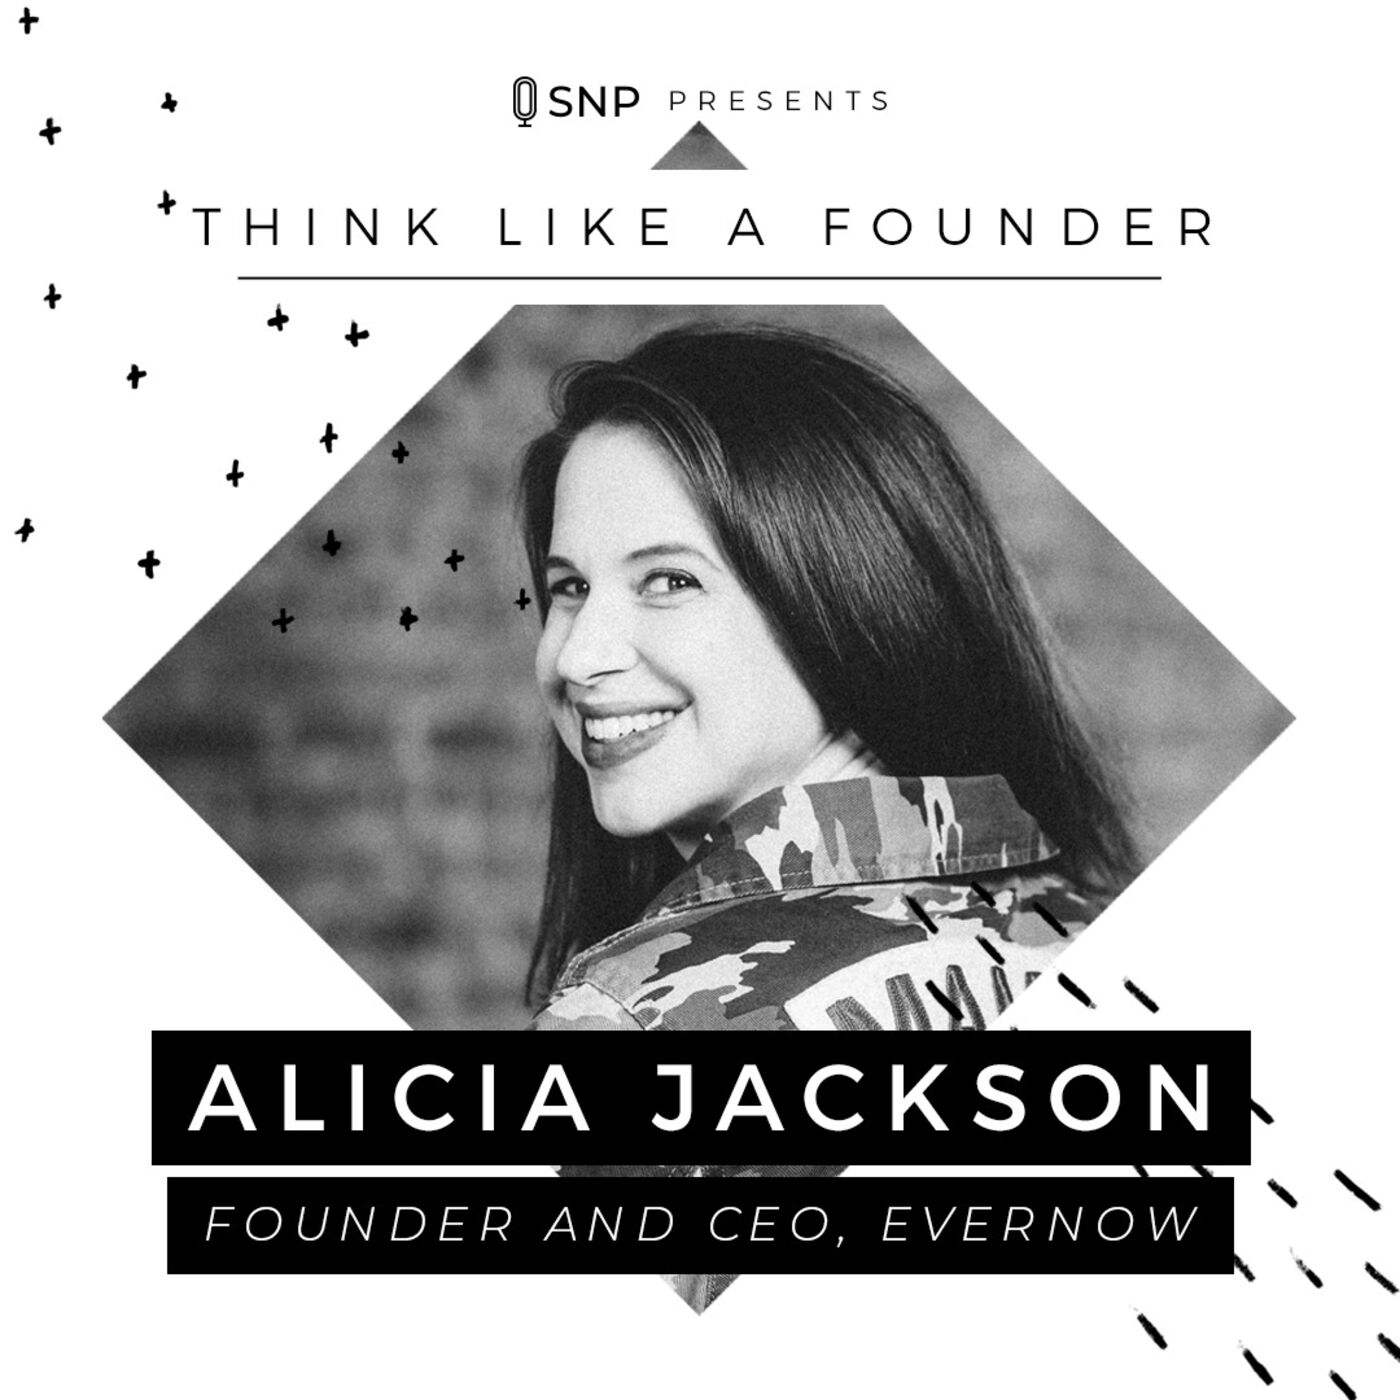 003: Alicia Jackson - Founder and CEO of Evernow